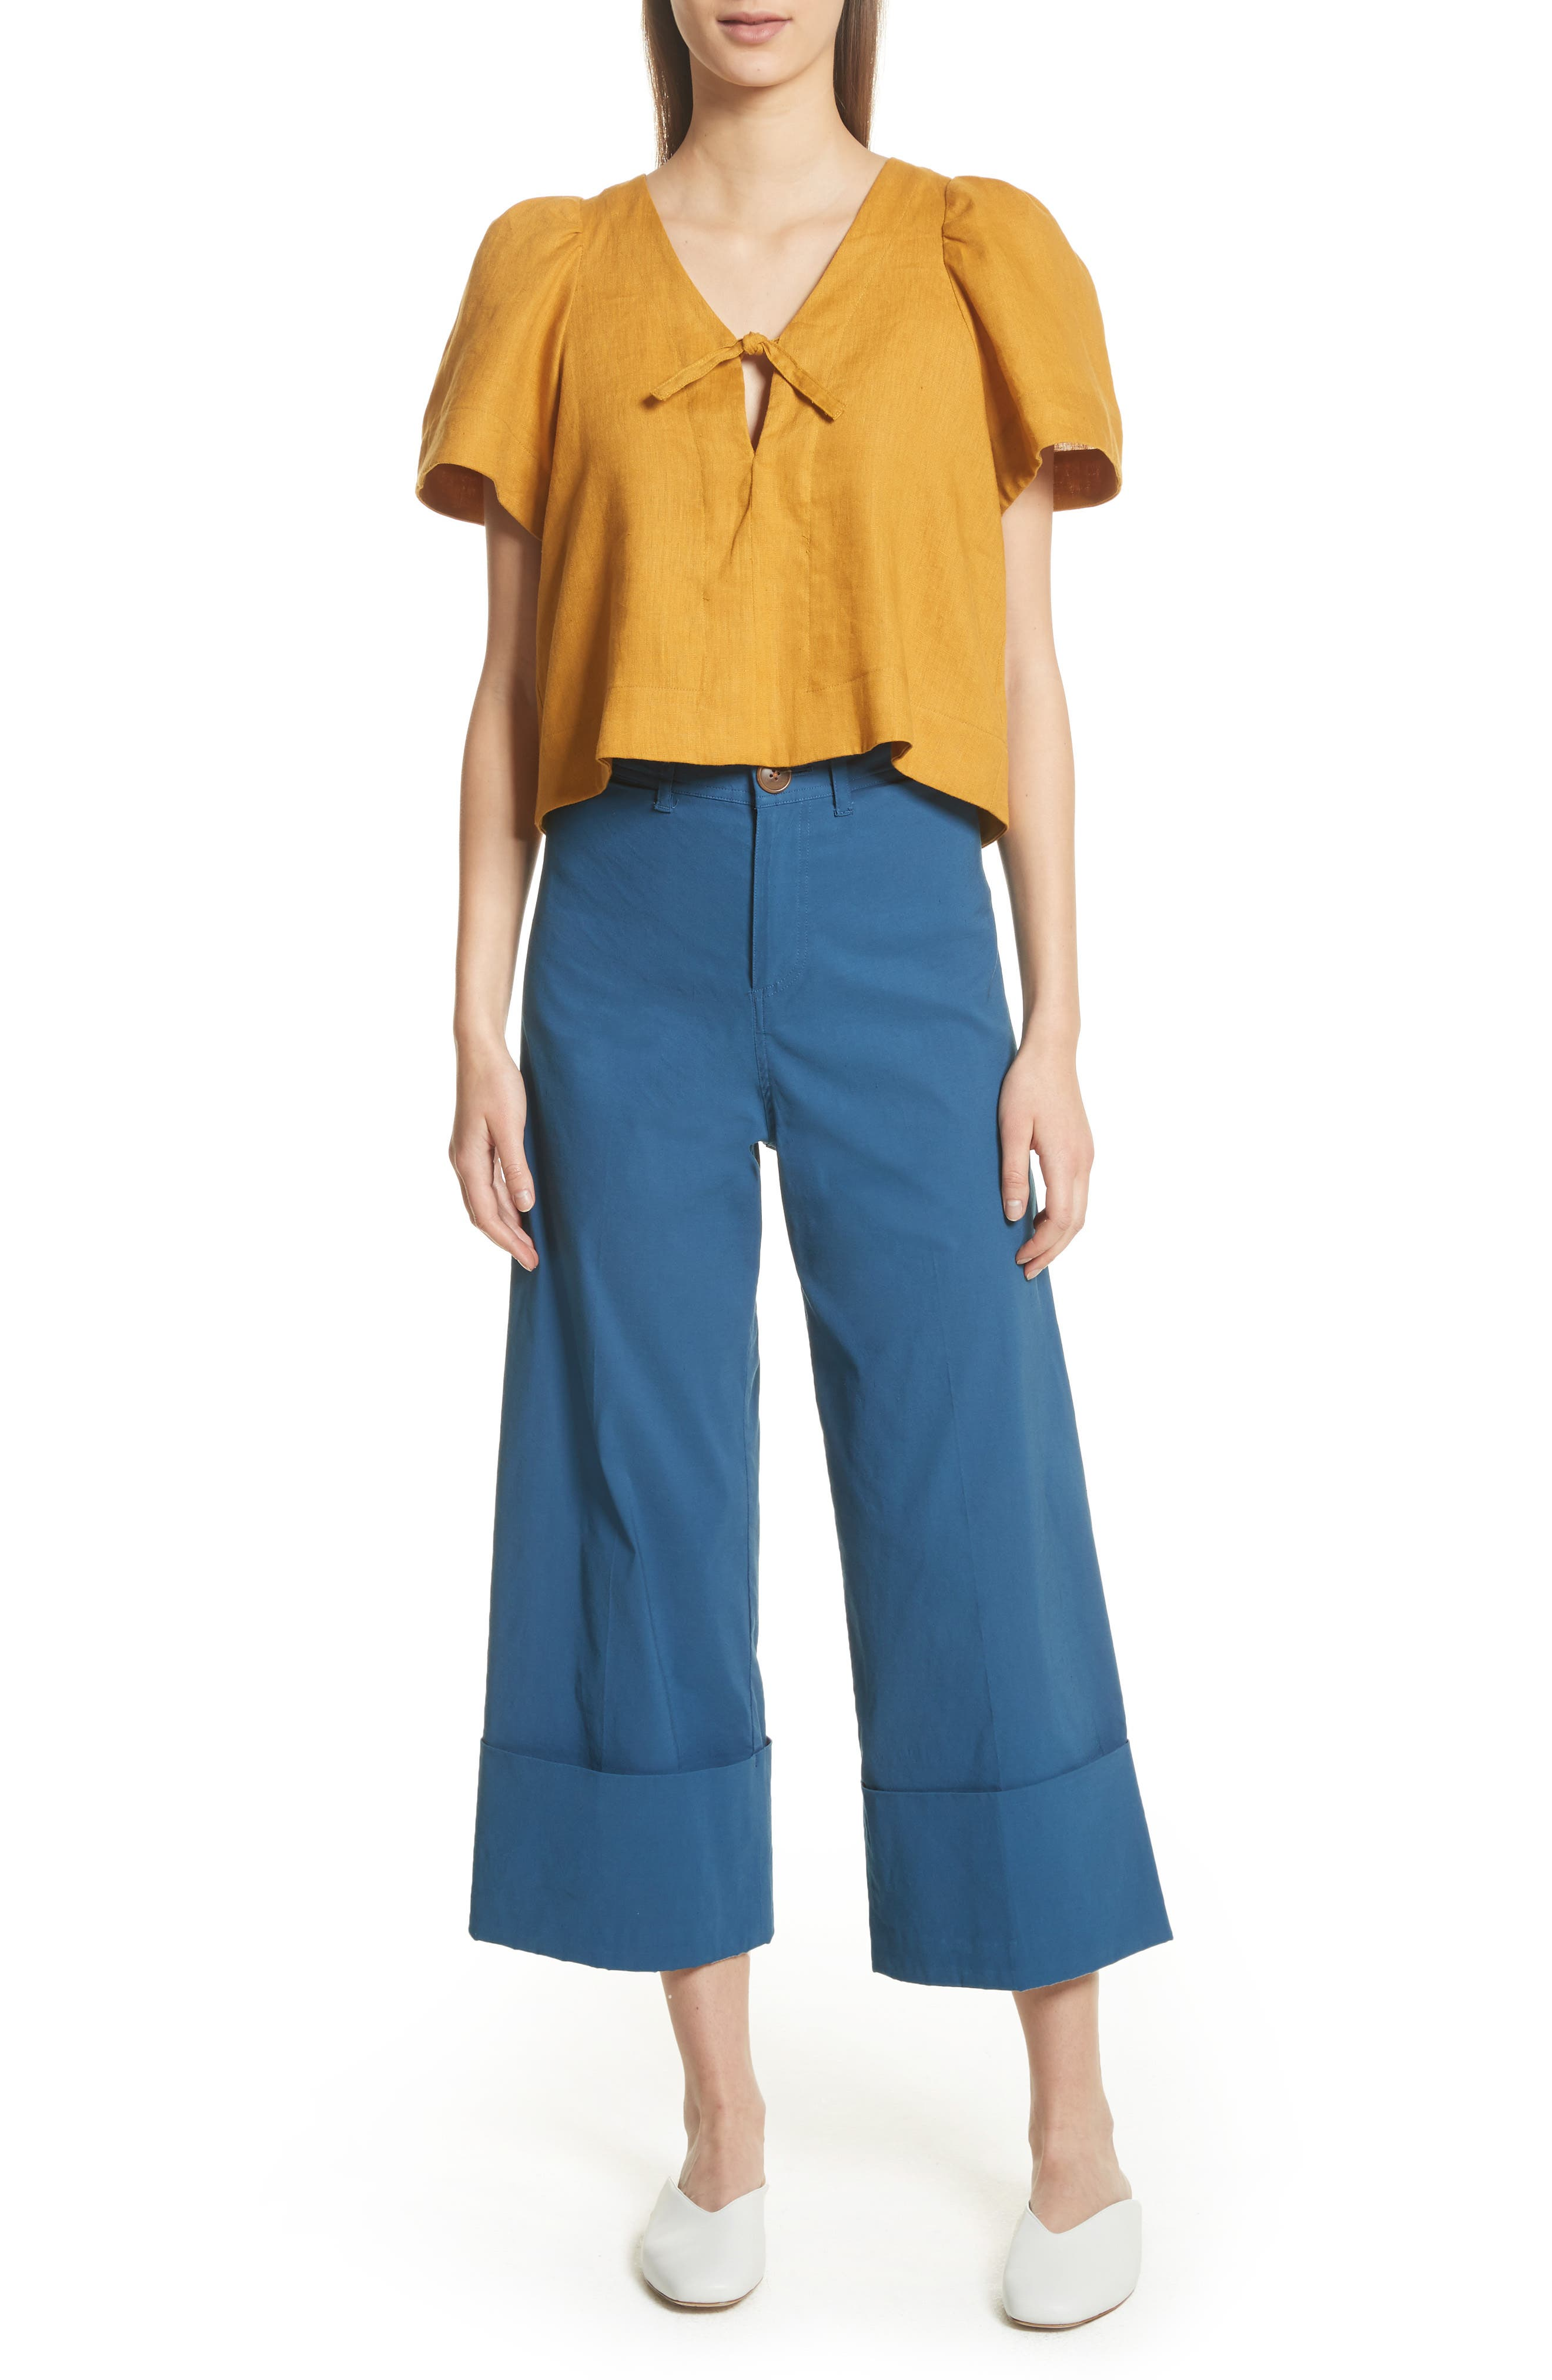 Winona Cuff Wide Leg Pants,                             Alternate thumbnail 7, color,                             400